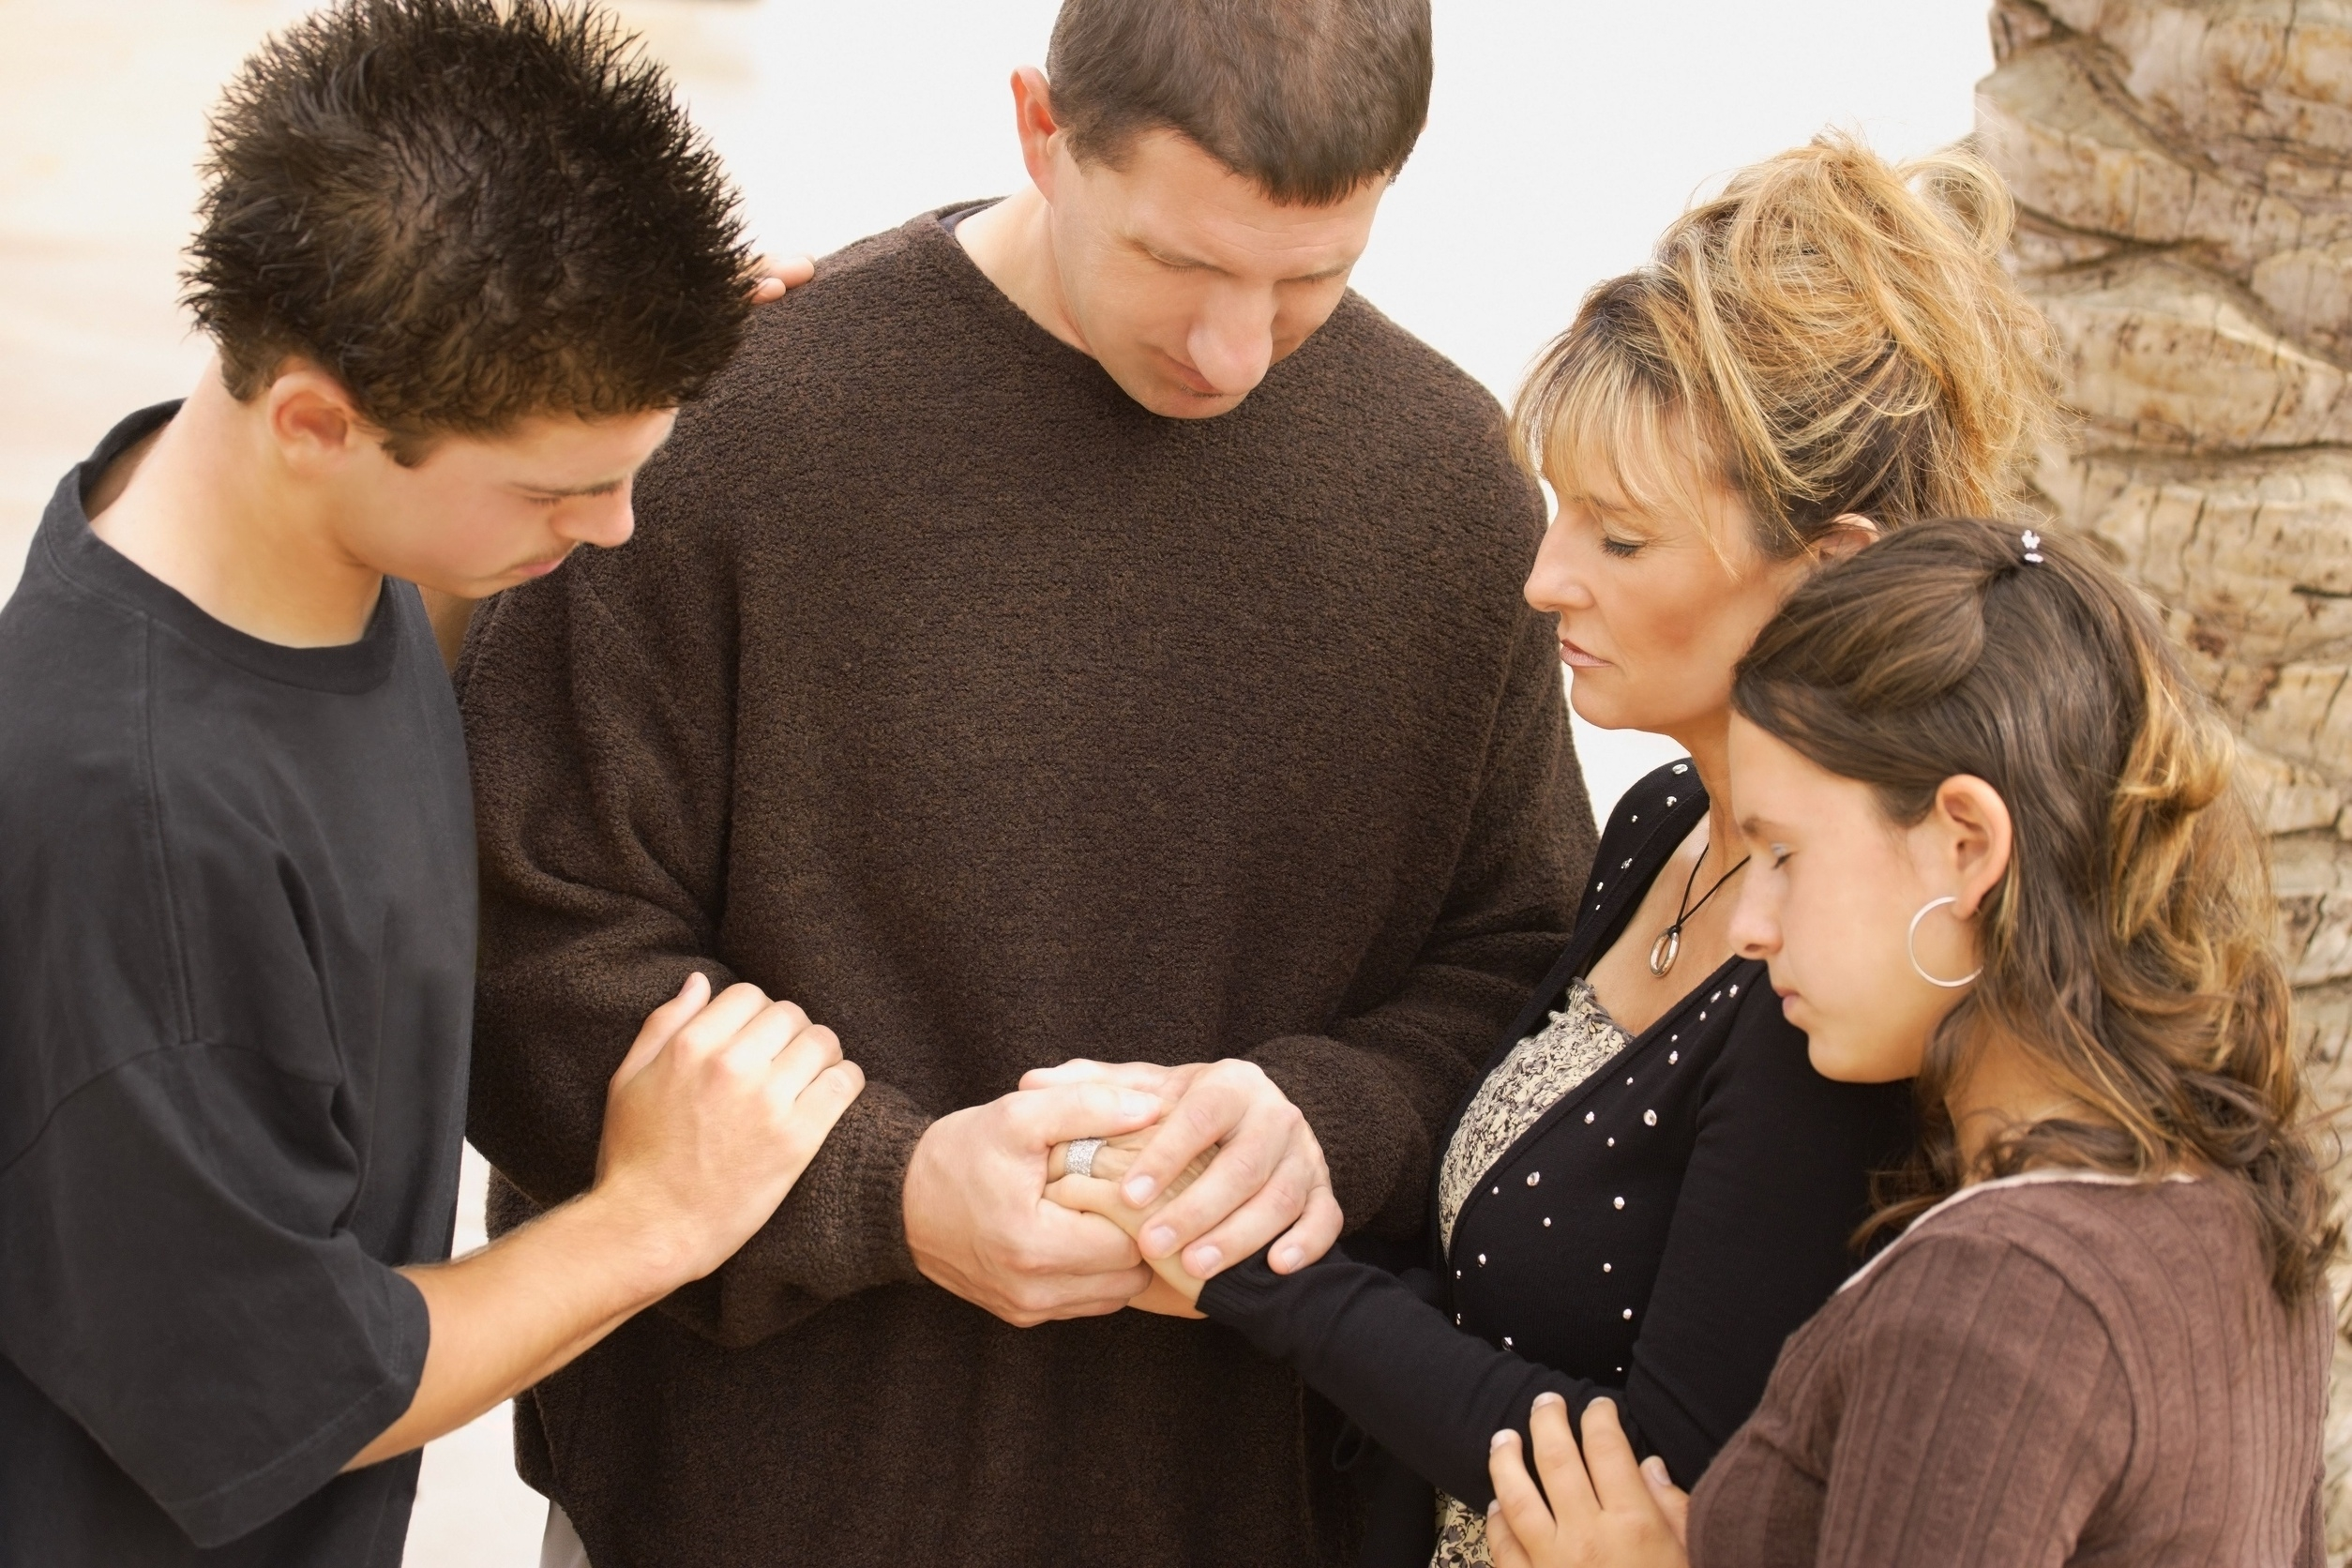 family-praying-together.jpg